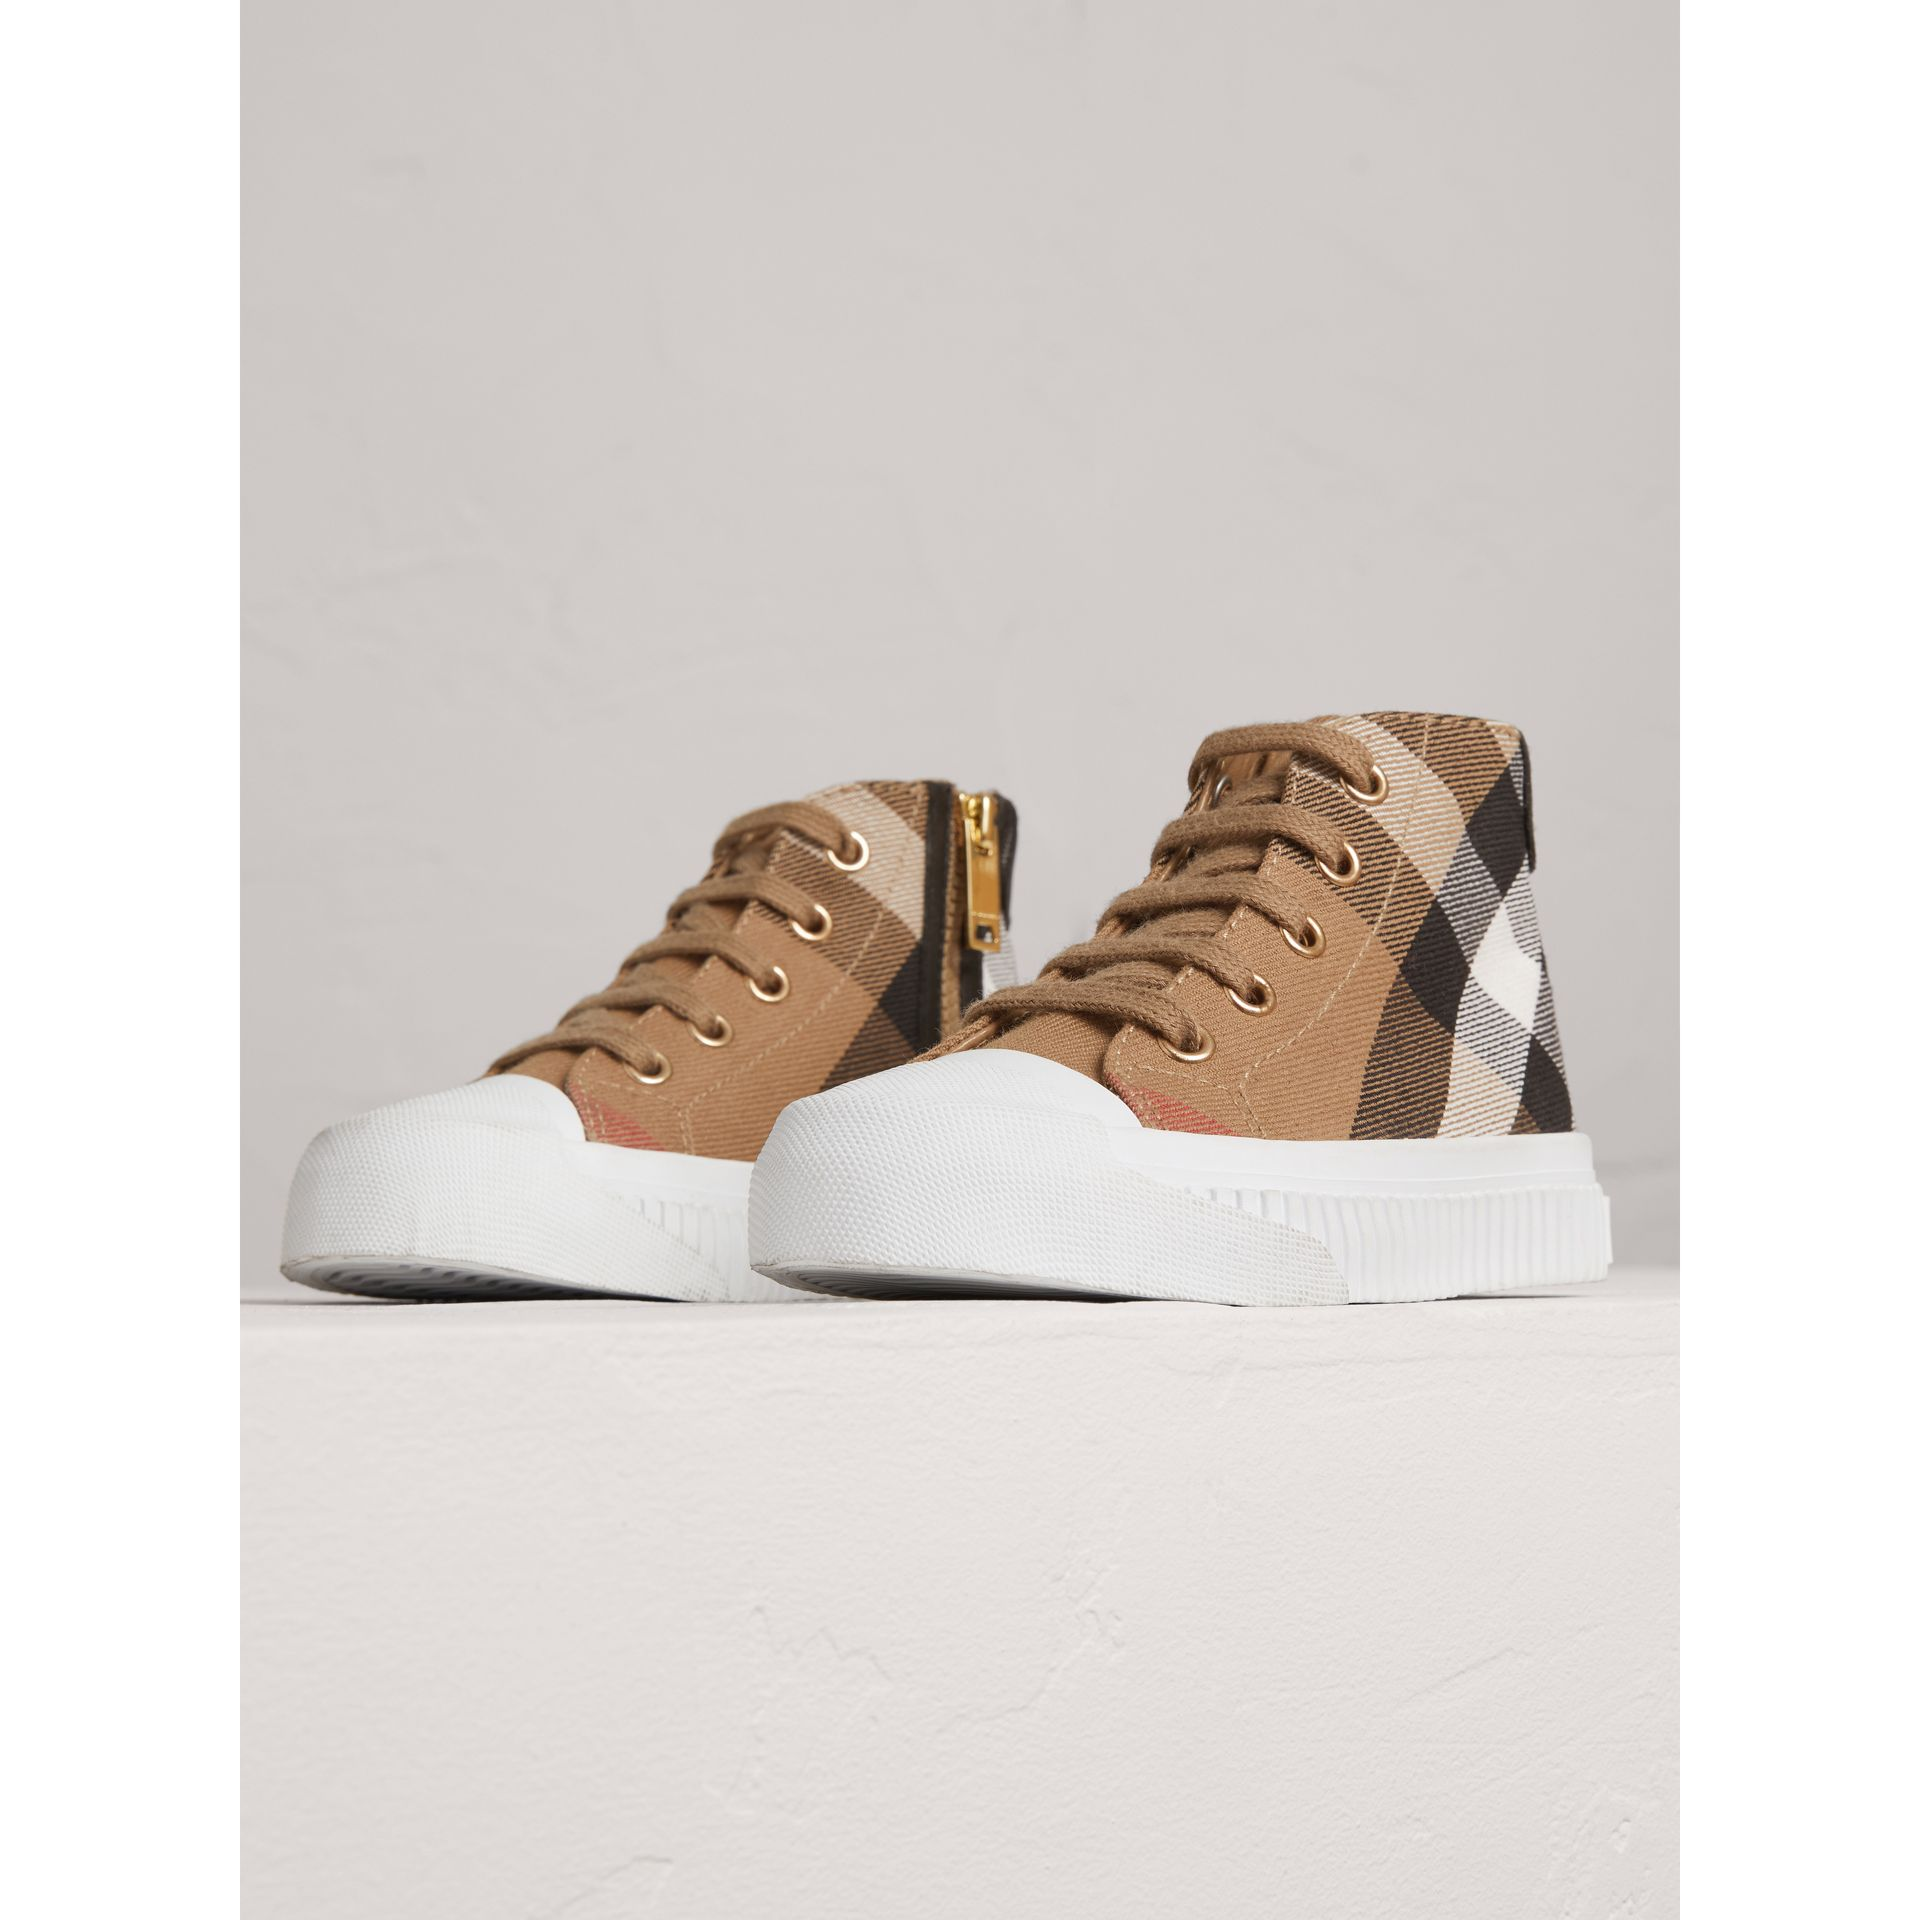 House Check and Leather High-top Sneakers in Classic/optic White | Burberry United Kingdom - gallery image 3